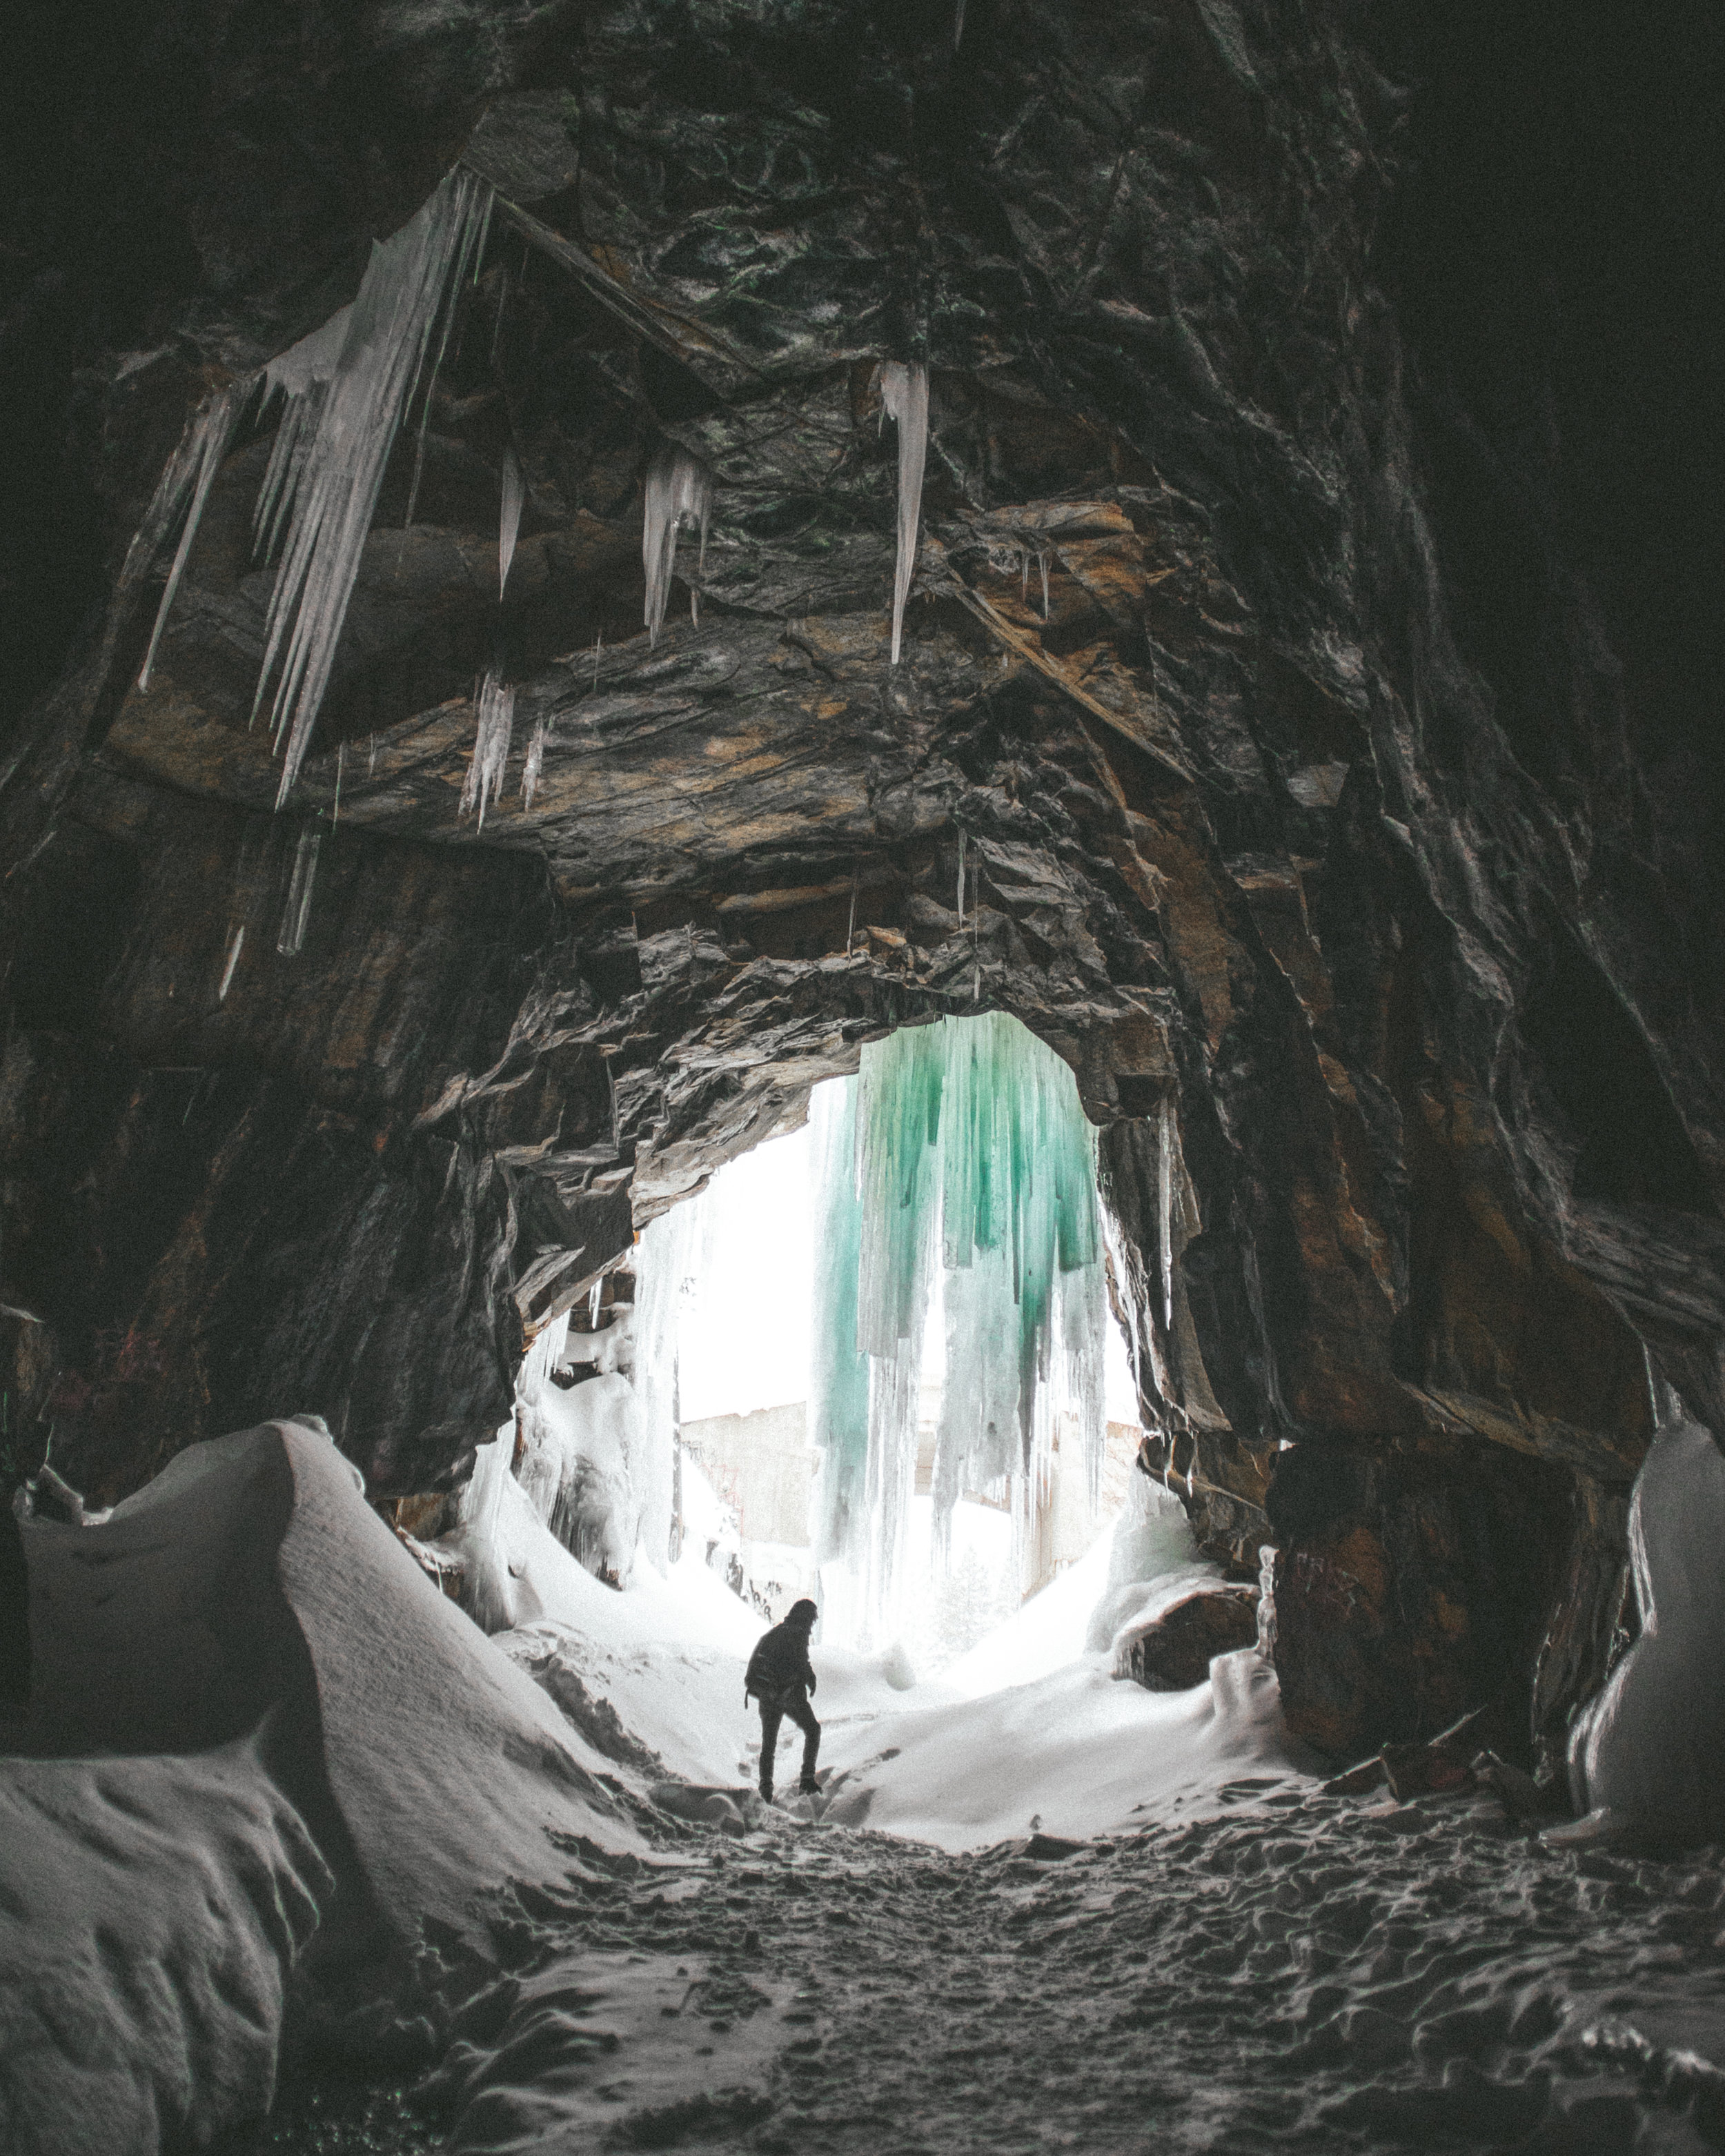 01.07.2016 // started off the year by revisiting one of my favorite spots to hit in the winter, Donner Summit Tunnels . for years, i've bee wanting to come here when the massive icicles hang from the ceilings and glad to have finally witnessed it.